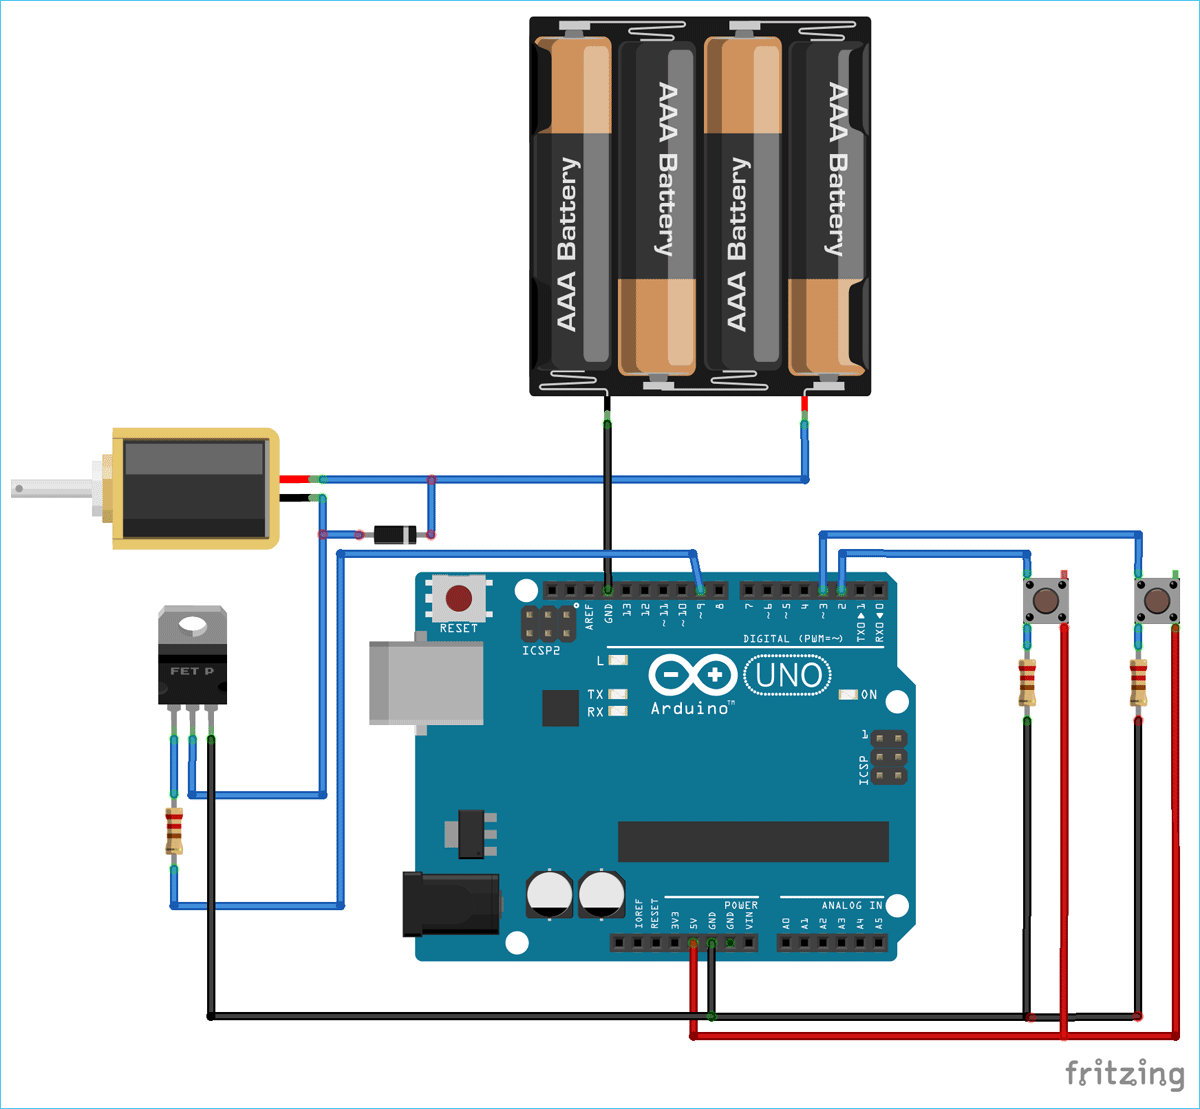 Circuit Diagram For Controlling A Solenoid Valve With Arduino